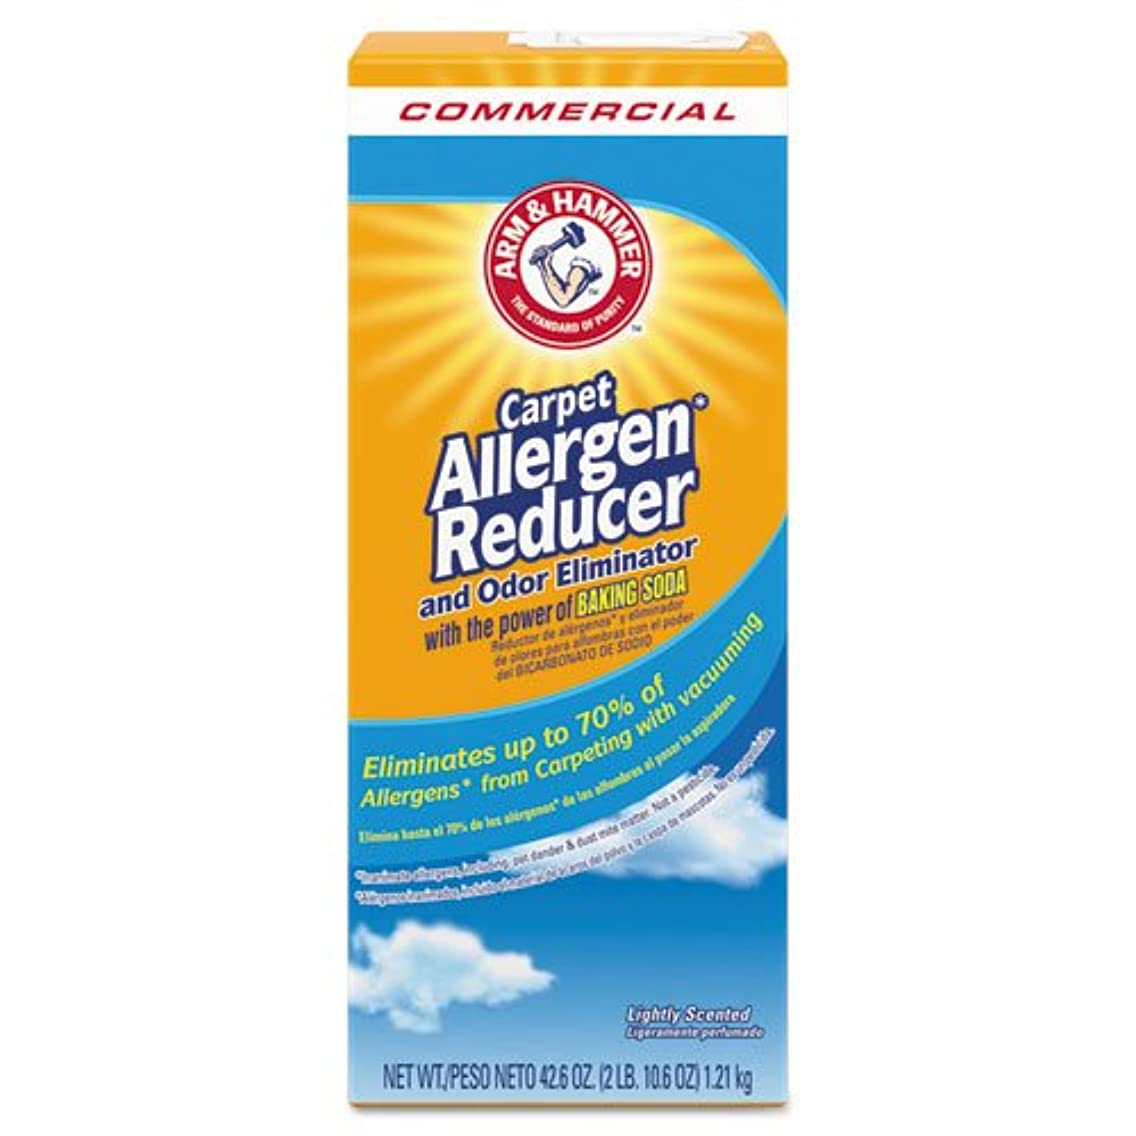 Arm & Hammer Carpet & Room Allergen Reducer and Odor Eliminator, 42.6 oz Box